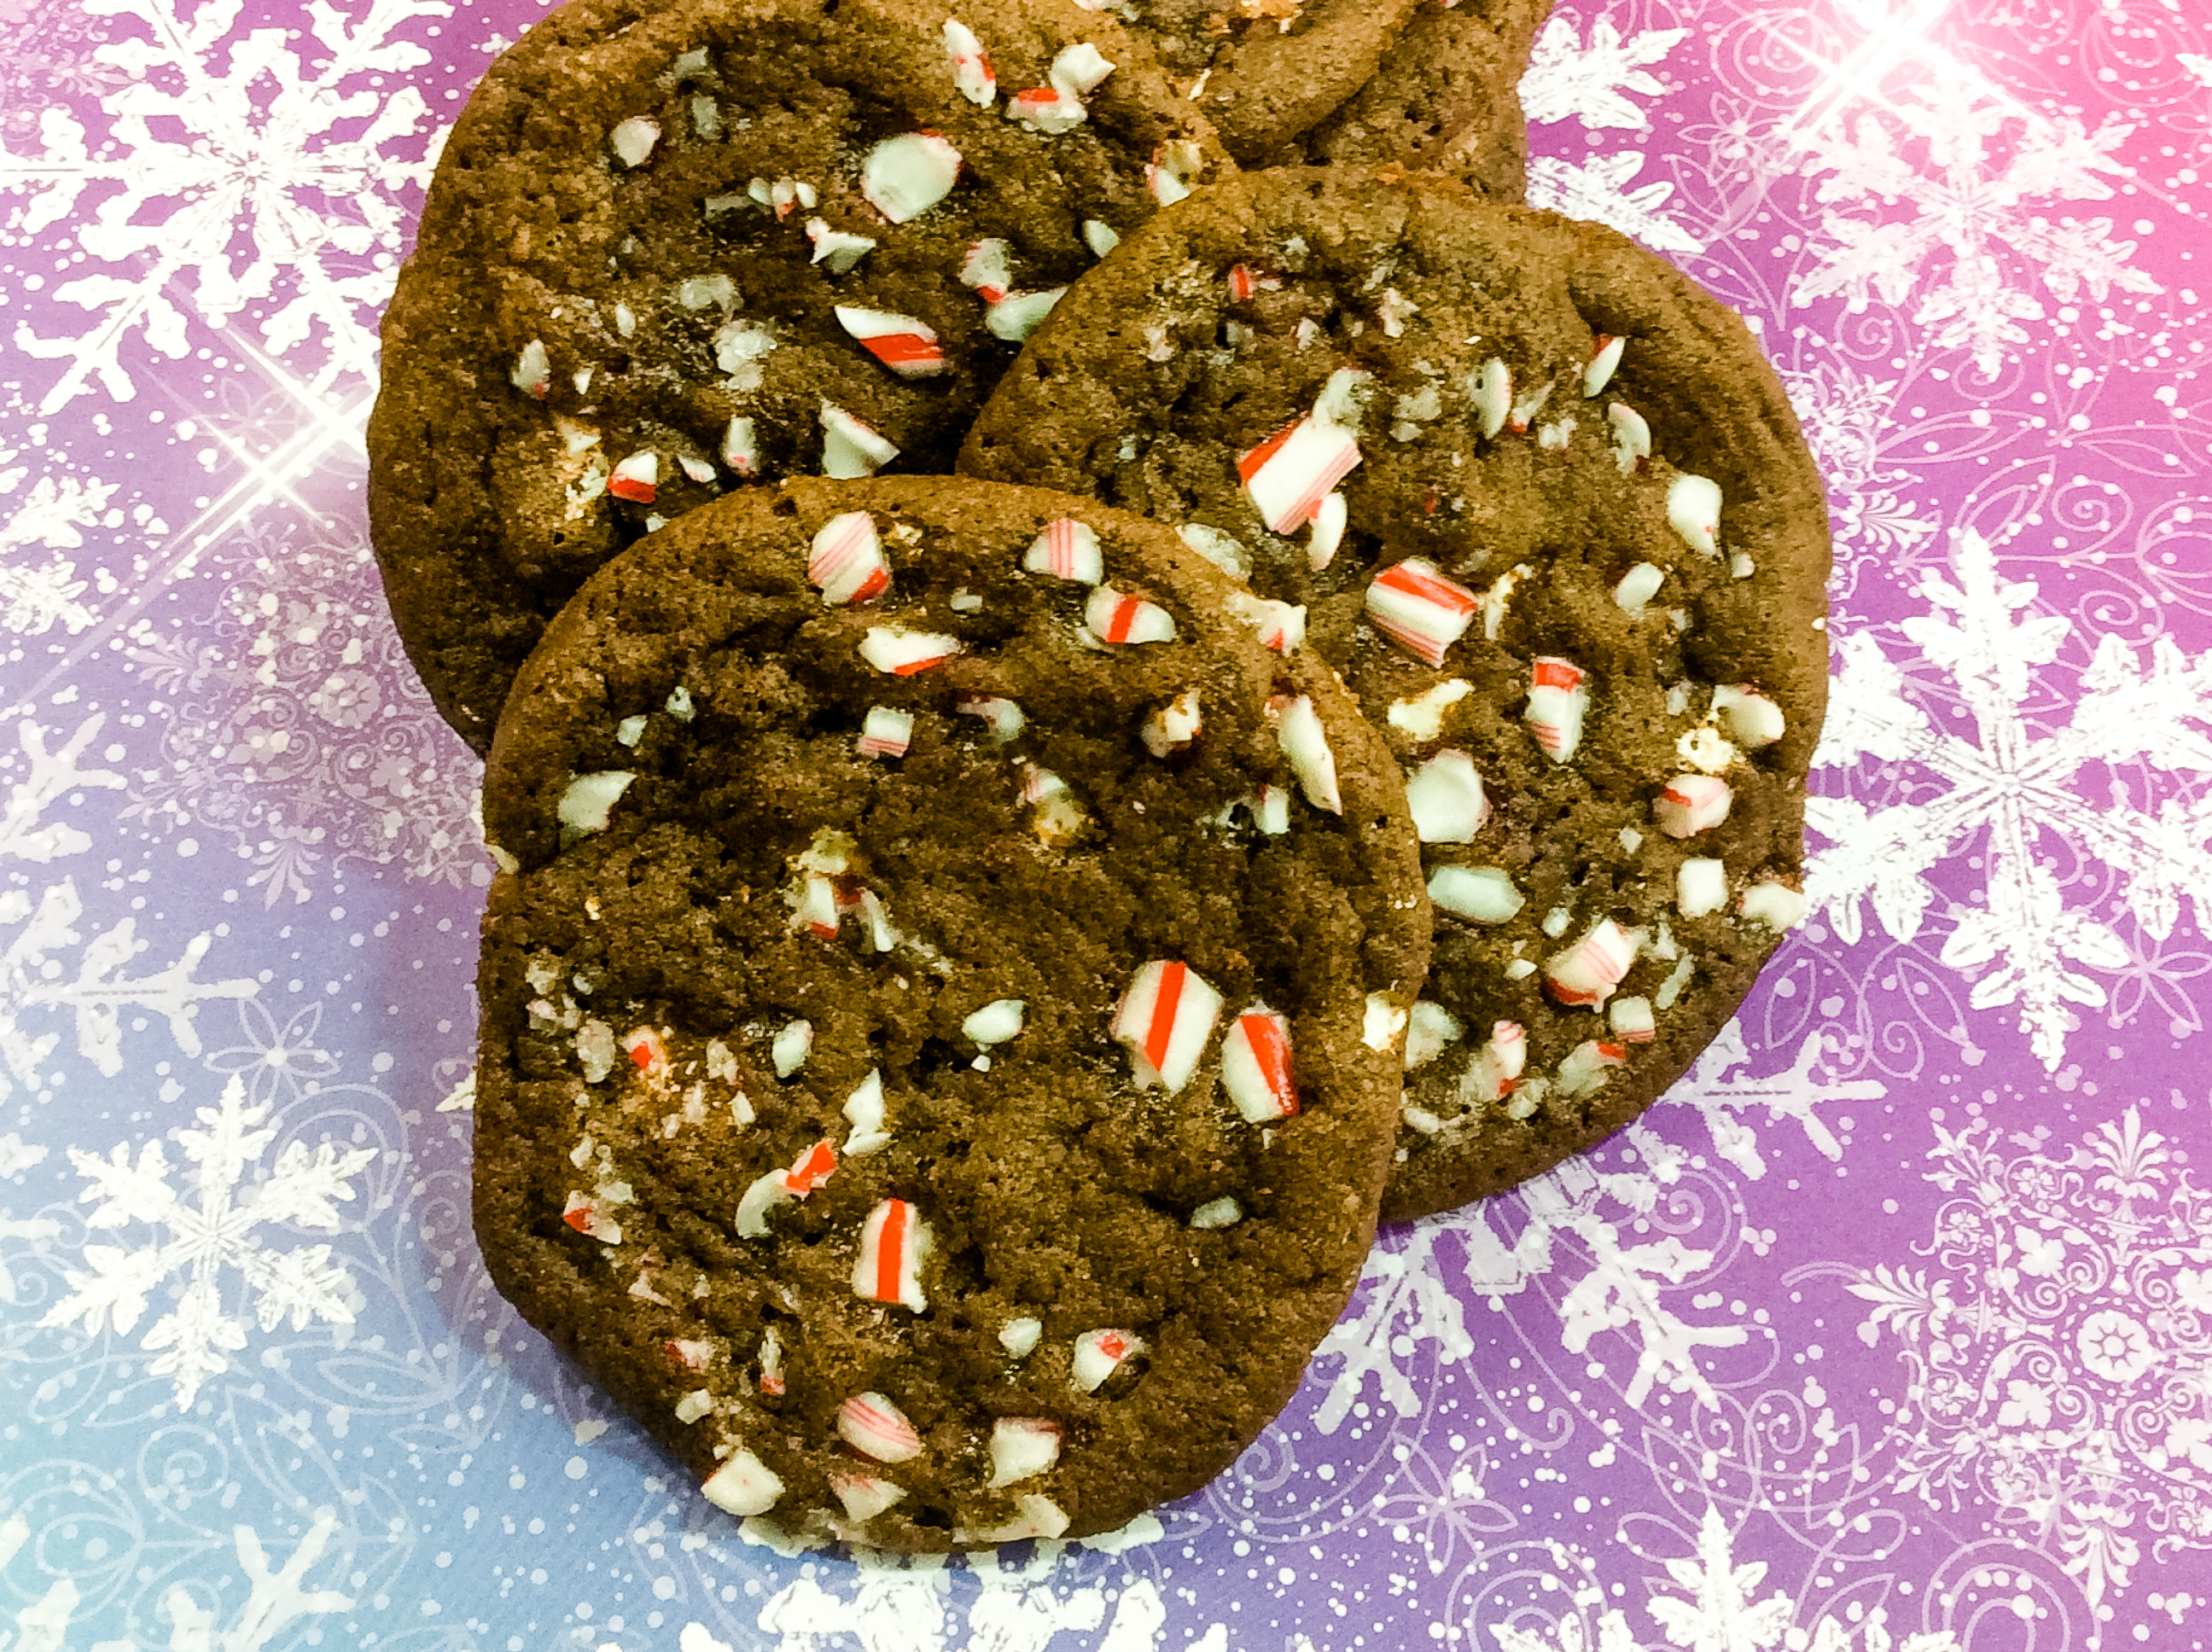 What would be better than Hot Chocolate Cookies that bake up soft, thick and tastes just like hot chocolate? Hot Chocolate cookies that are topped with chocolate chips and crushed candy canes. These Peppermint Hot Chocolate Cookies are perfect all season long.